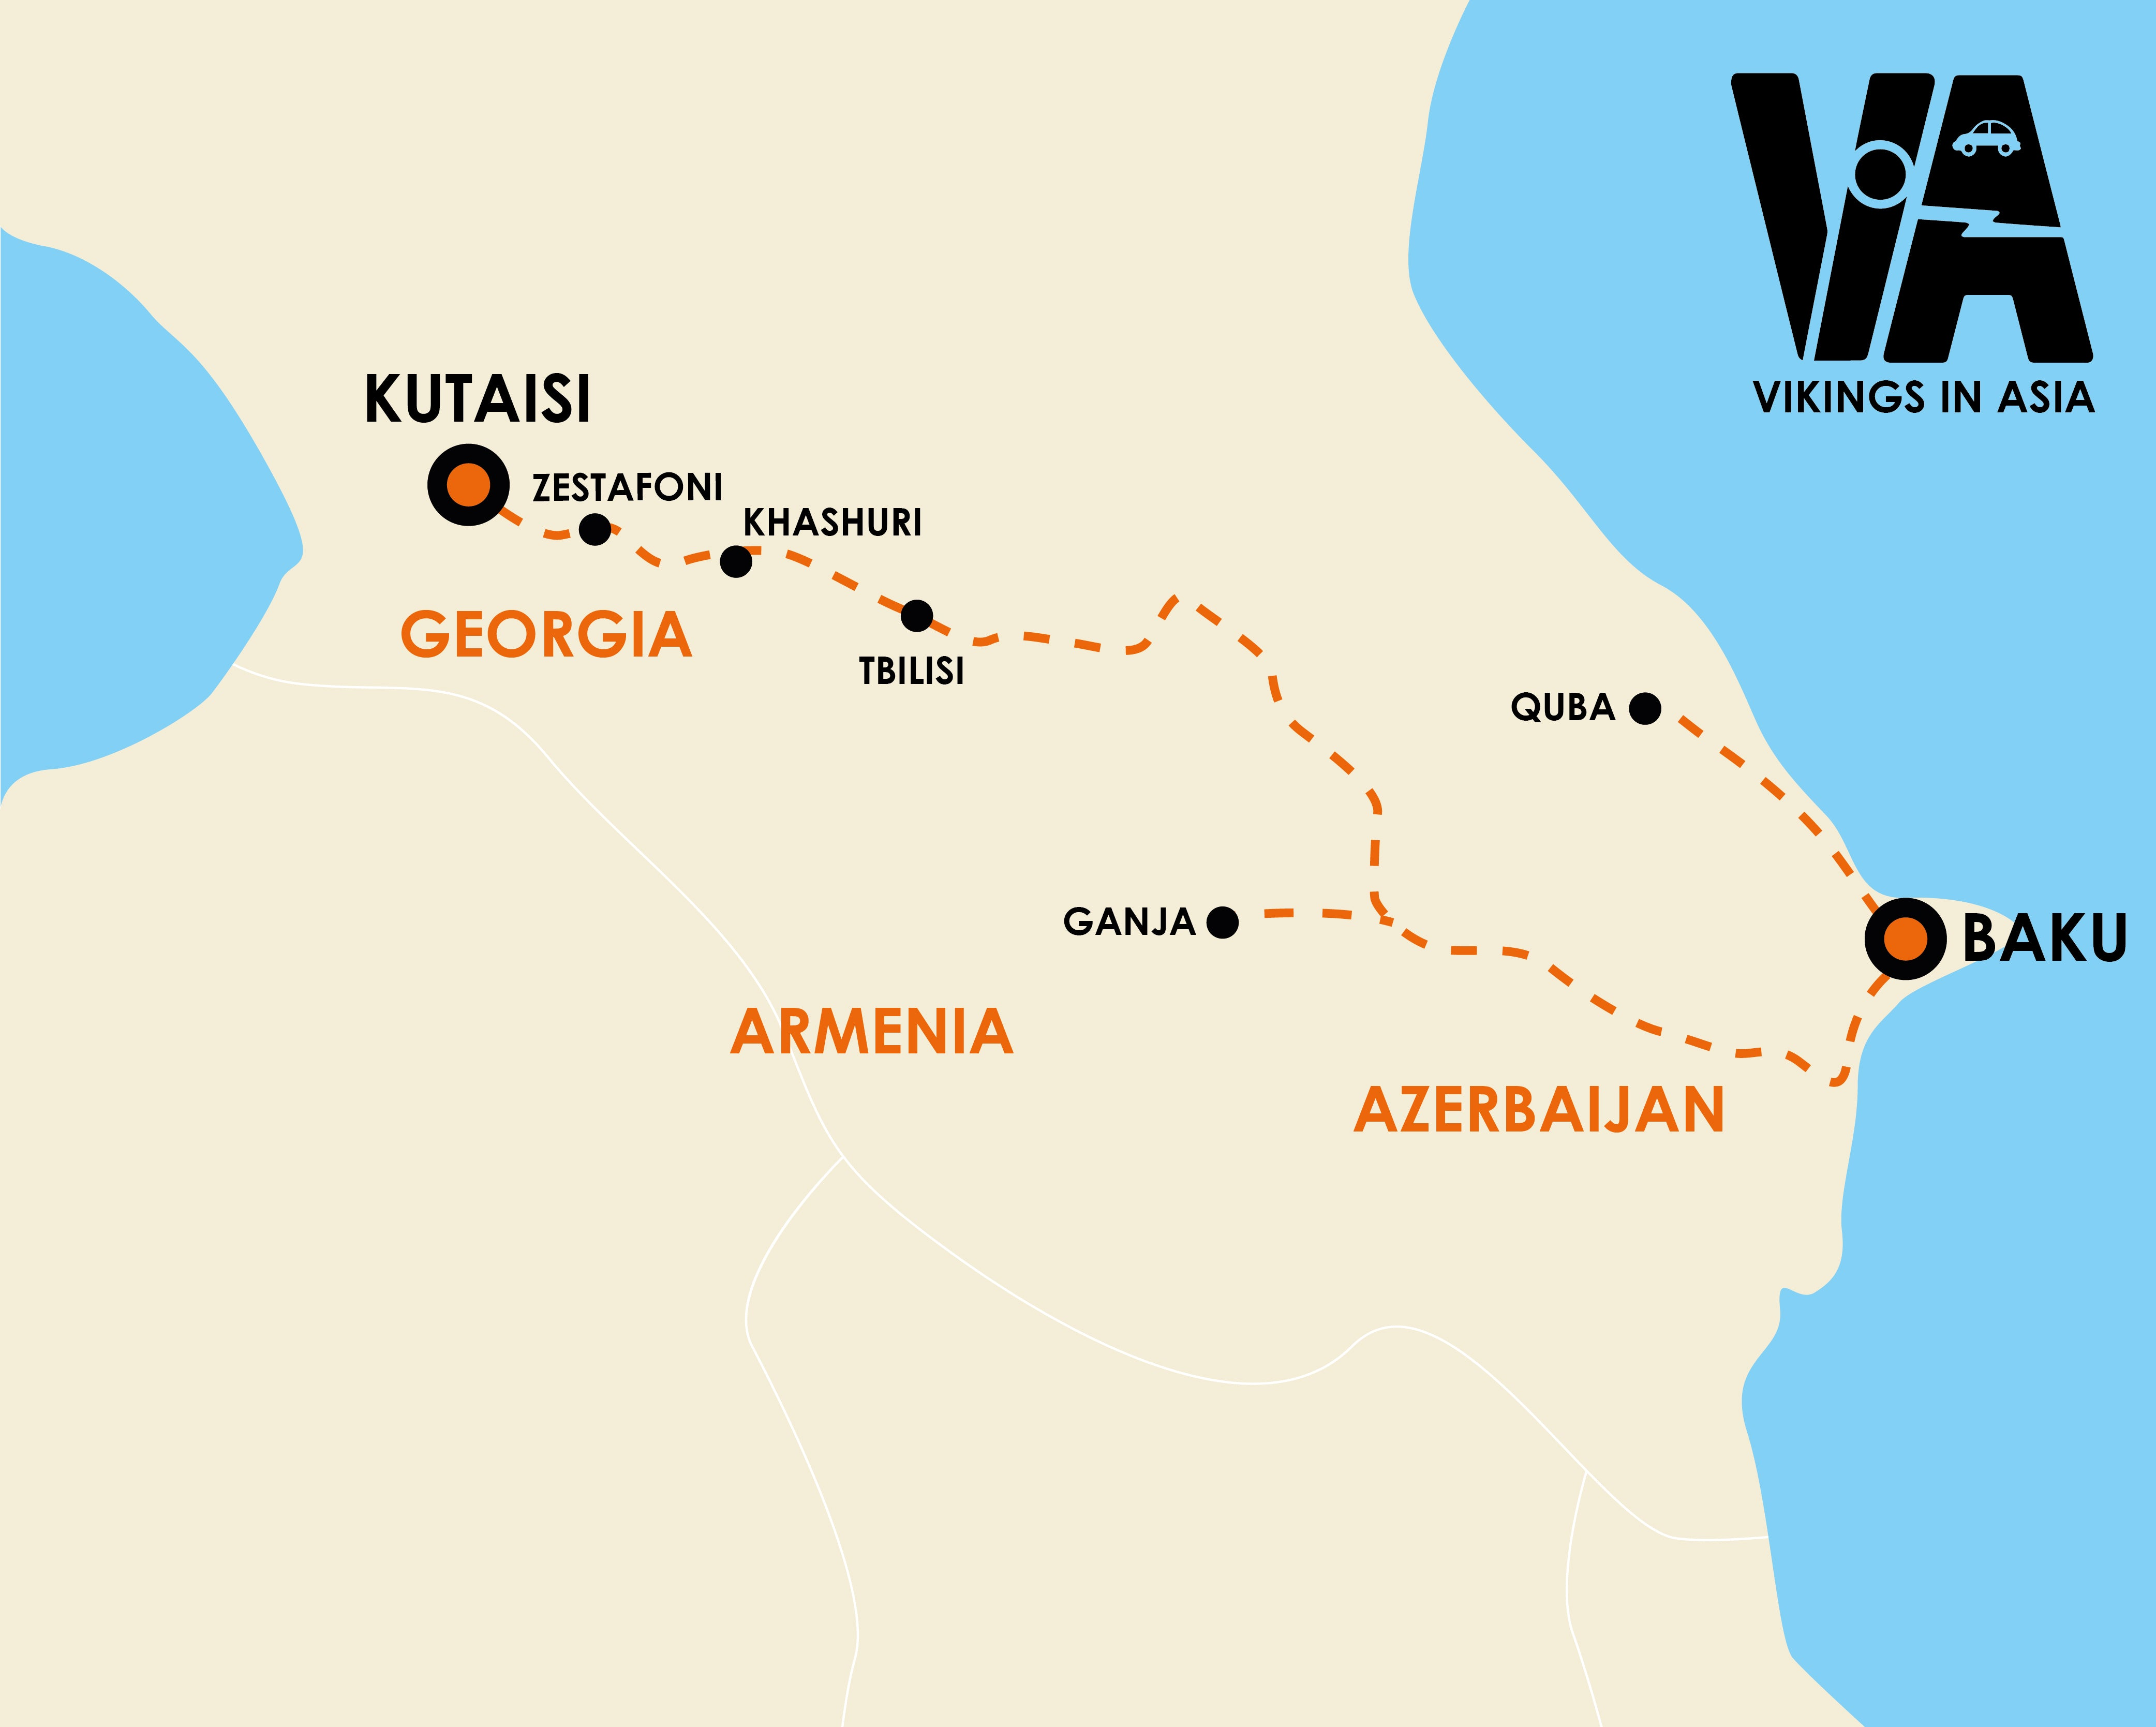 Kutaisi to Baku (2 weeks)